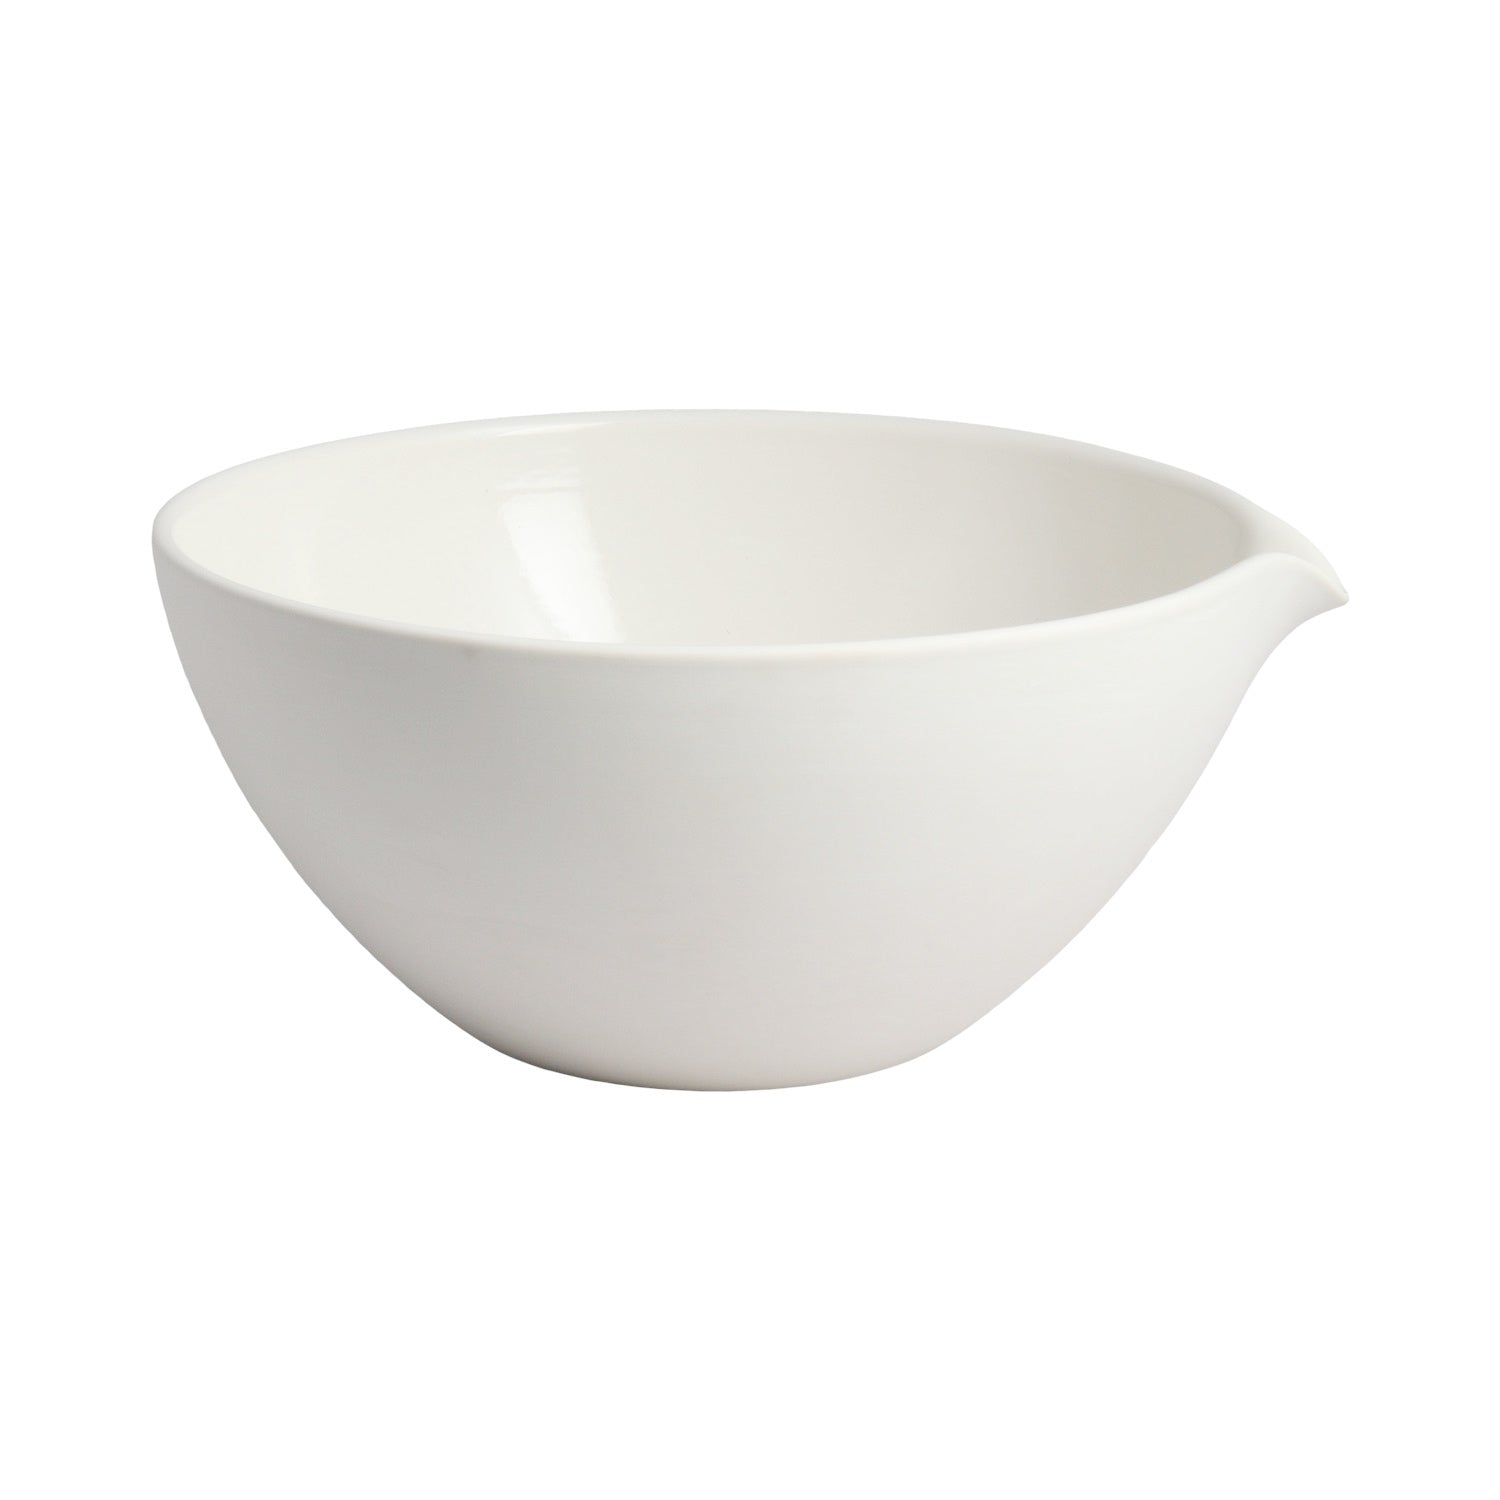 Large Pouring Bowl - 25cm